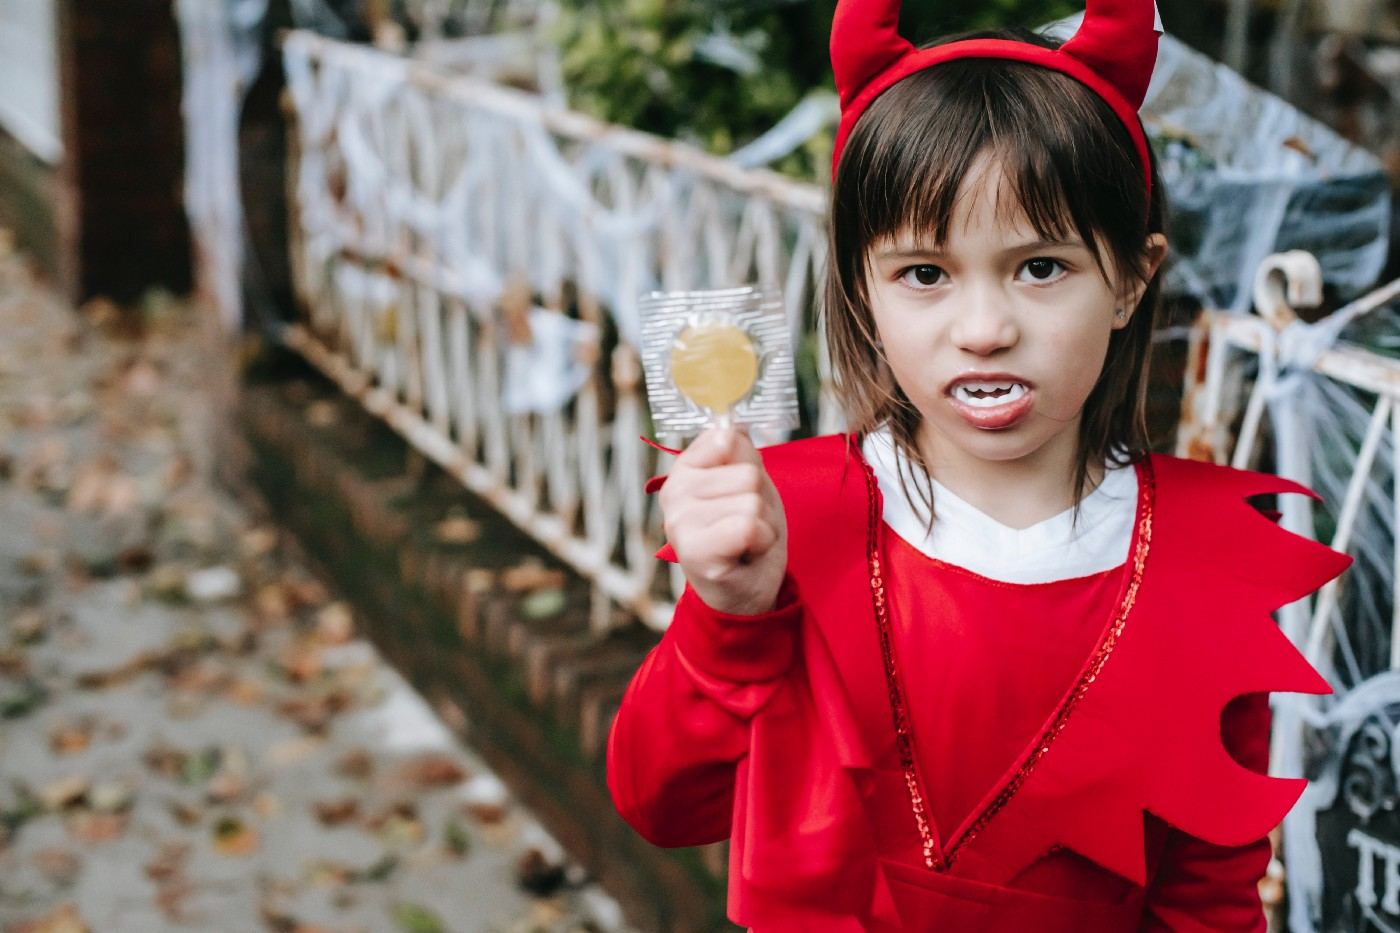 A little girl in a devil costume holds up a lollipop